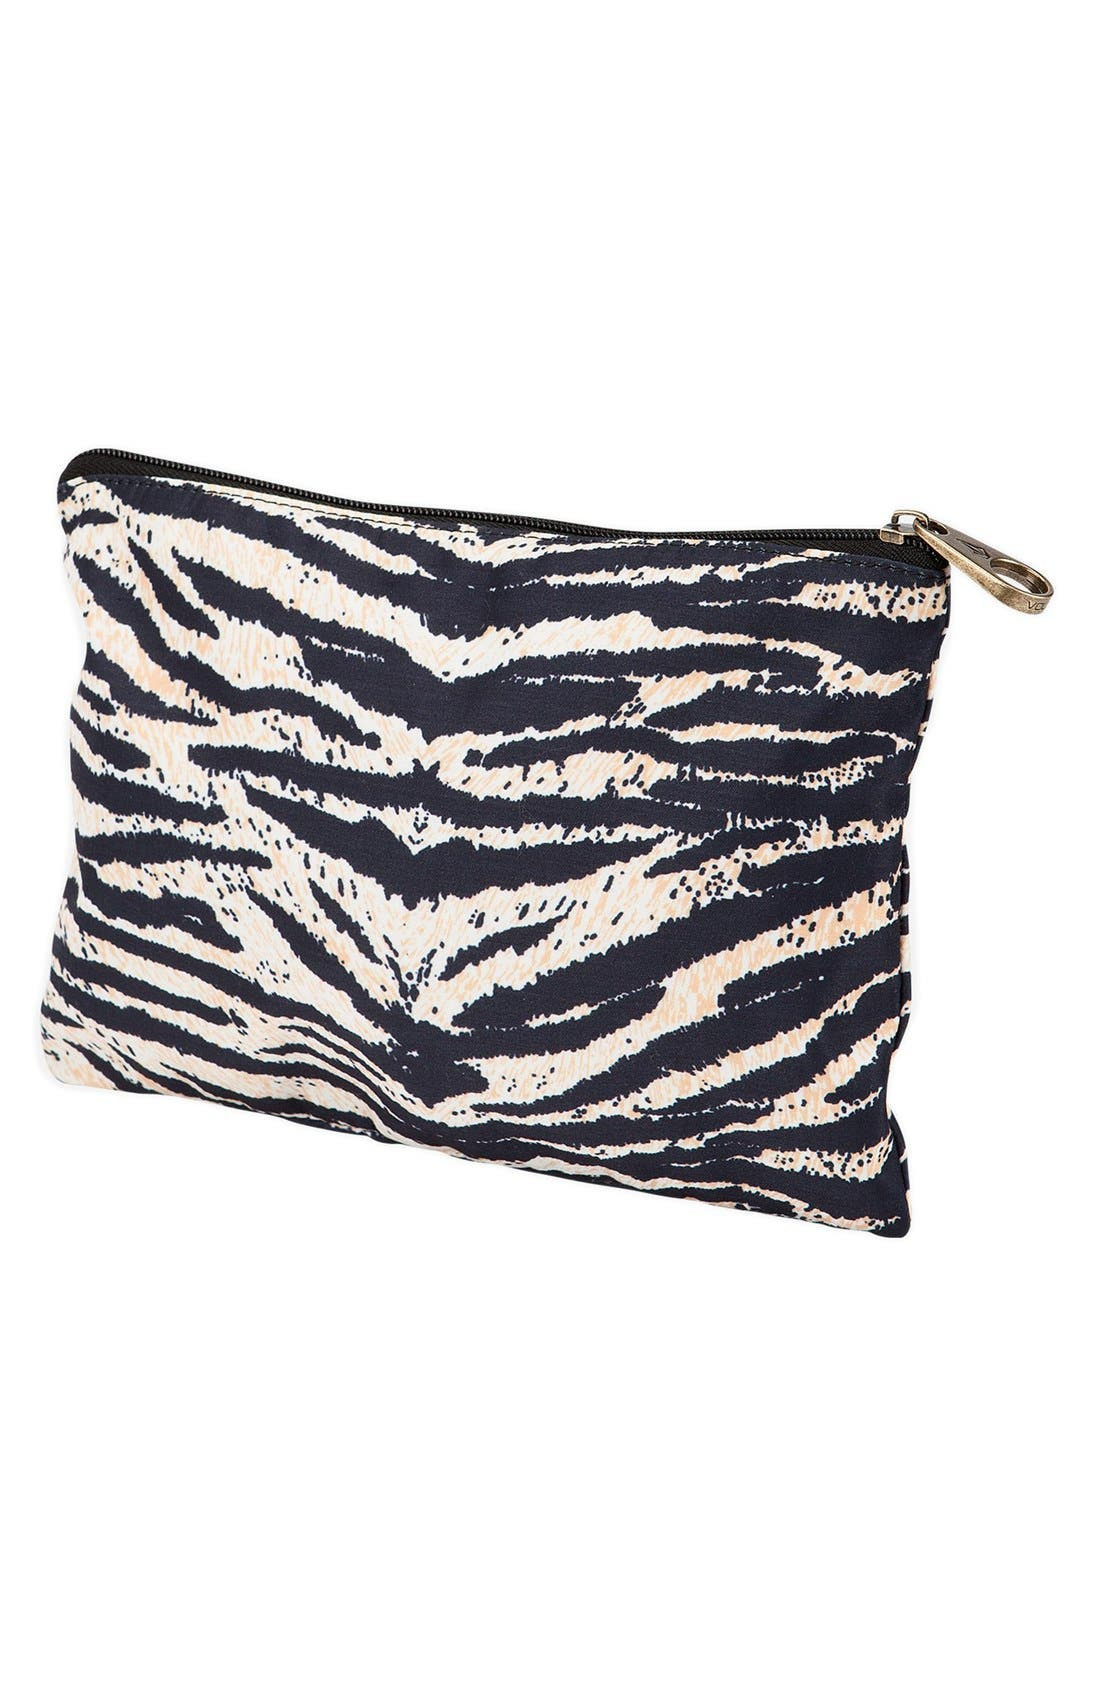 Alternate Image 1 Selected - Volcom 'Poolside Party' Pouch